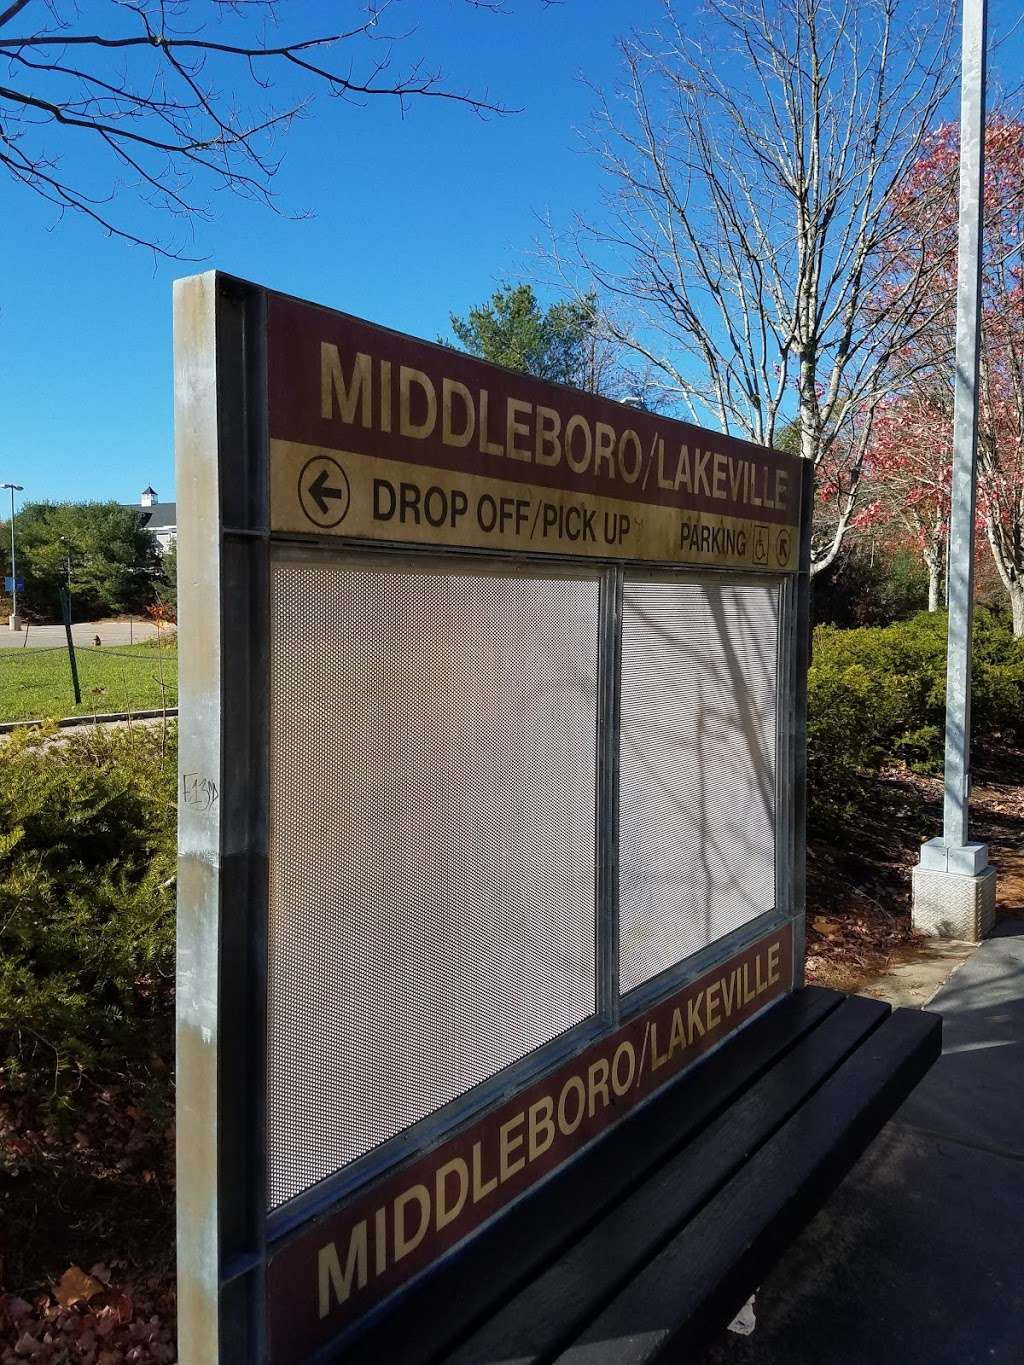 Middleboro/Lakeville - train station    Photo 4 of 4   Address: Commercial Dr, Lakeville, MA 02347, USA   Phone: (617) 222-3200